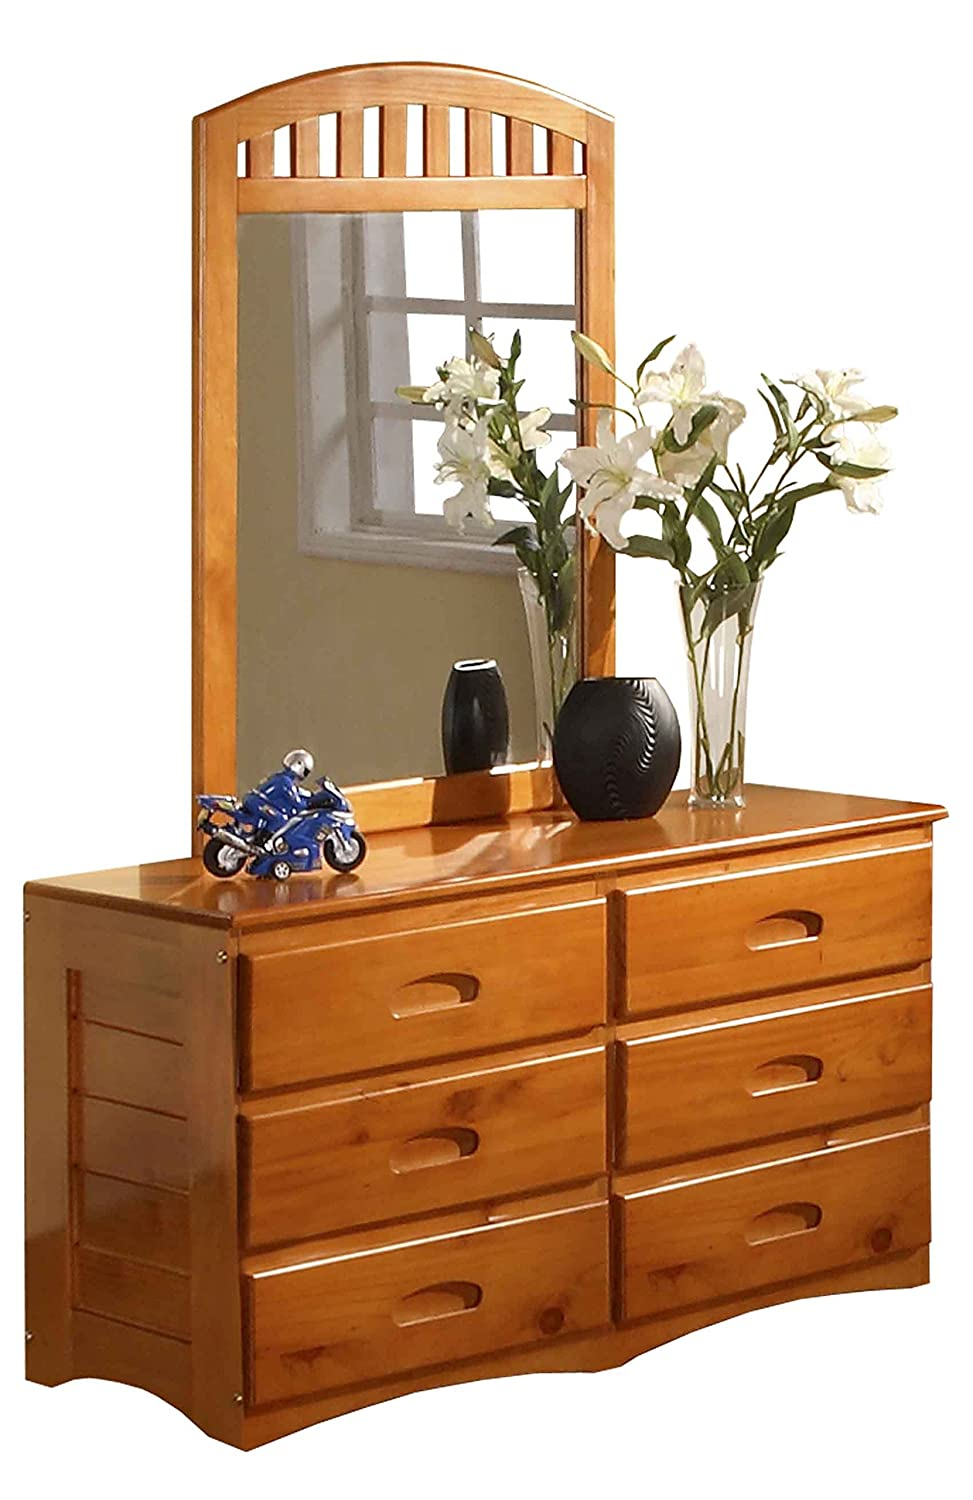 Discovery World Furniture 6 Drawer Dresser and Mirror, Honey